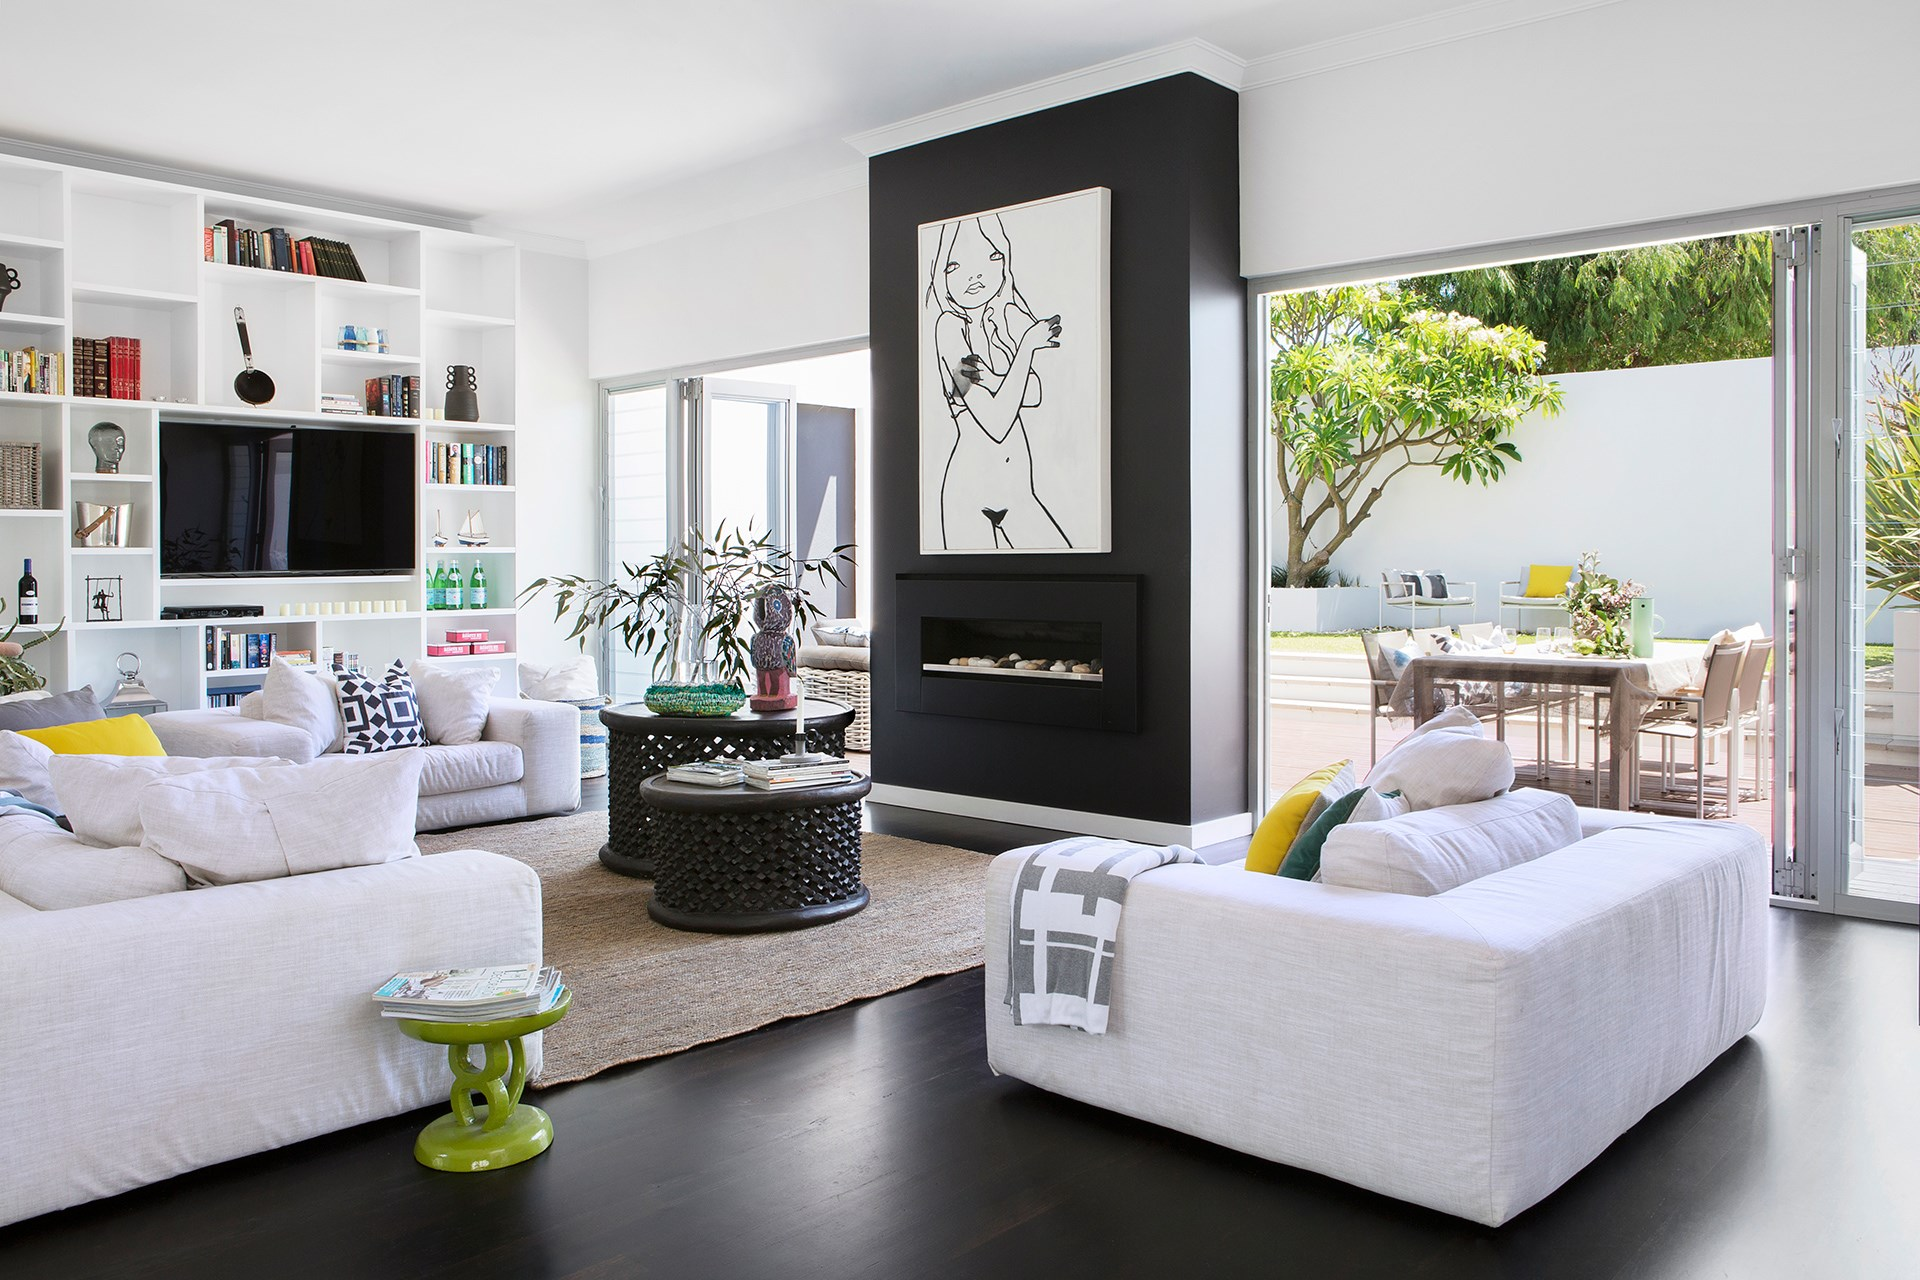 Two carved bamileke stools with a strong textural appeal are re-purposed as a coffee table in this [open plan family home](http://www.homestolove.com.au/open-plan-living-at-its-best-2557). Photo: Angelita Bonetti / *Australian House & Garden*